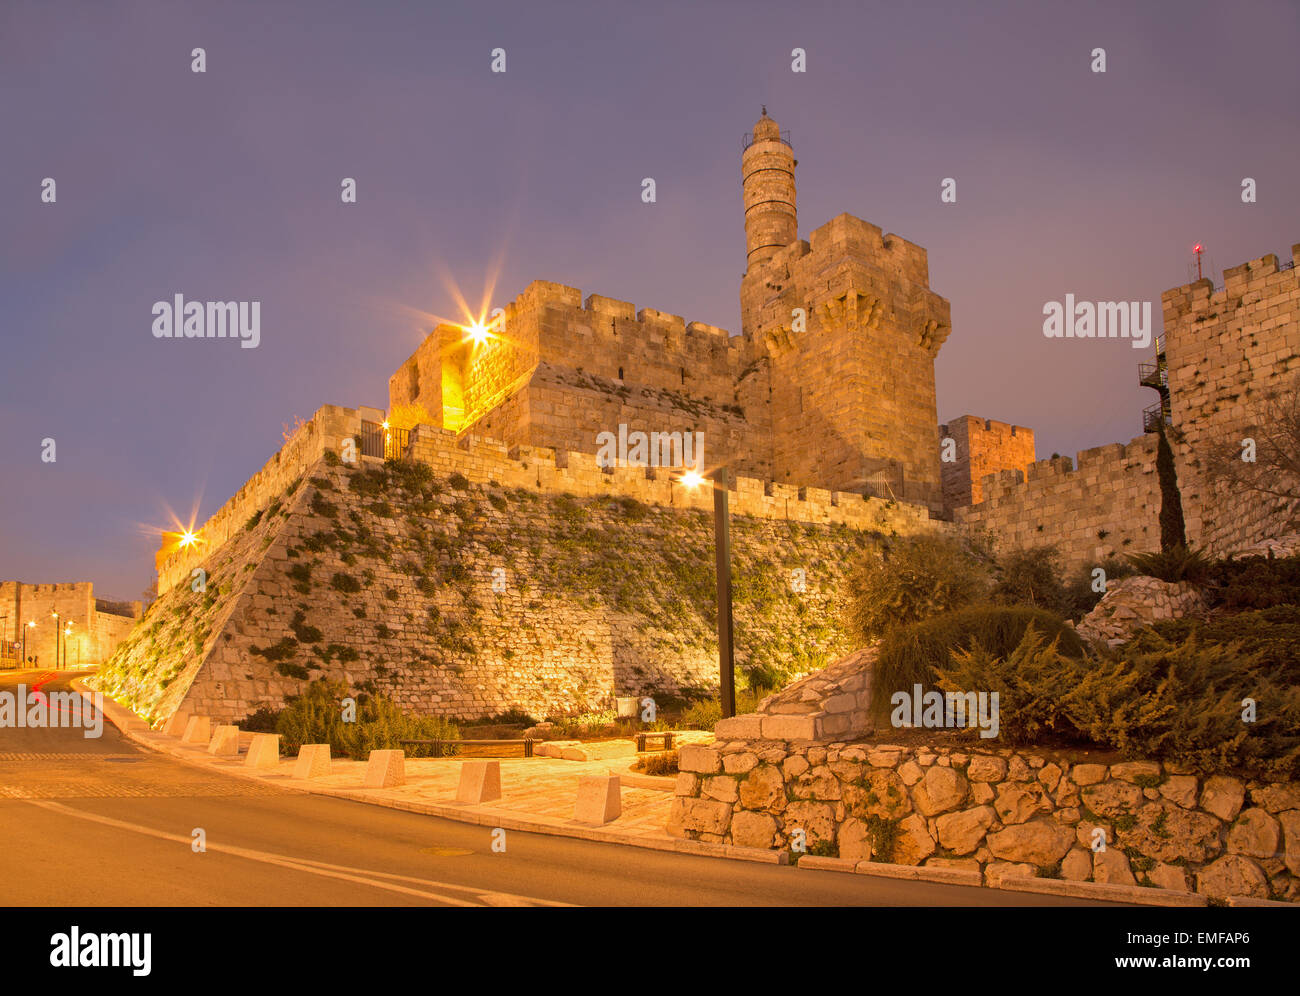 Jerusalem - The tower of David at dusk - Stock Image